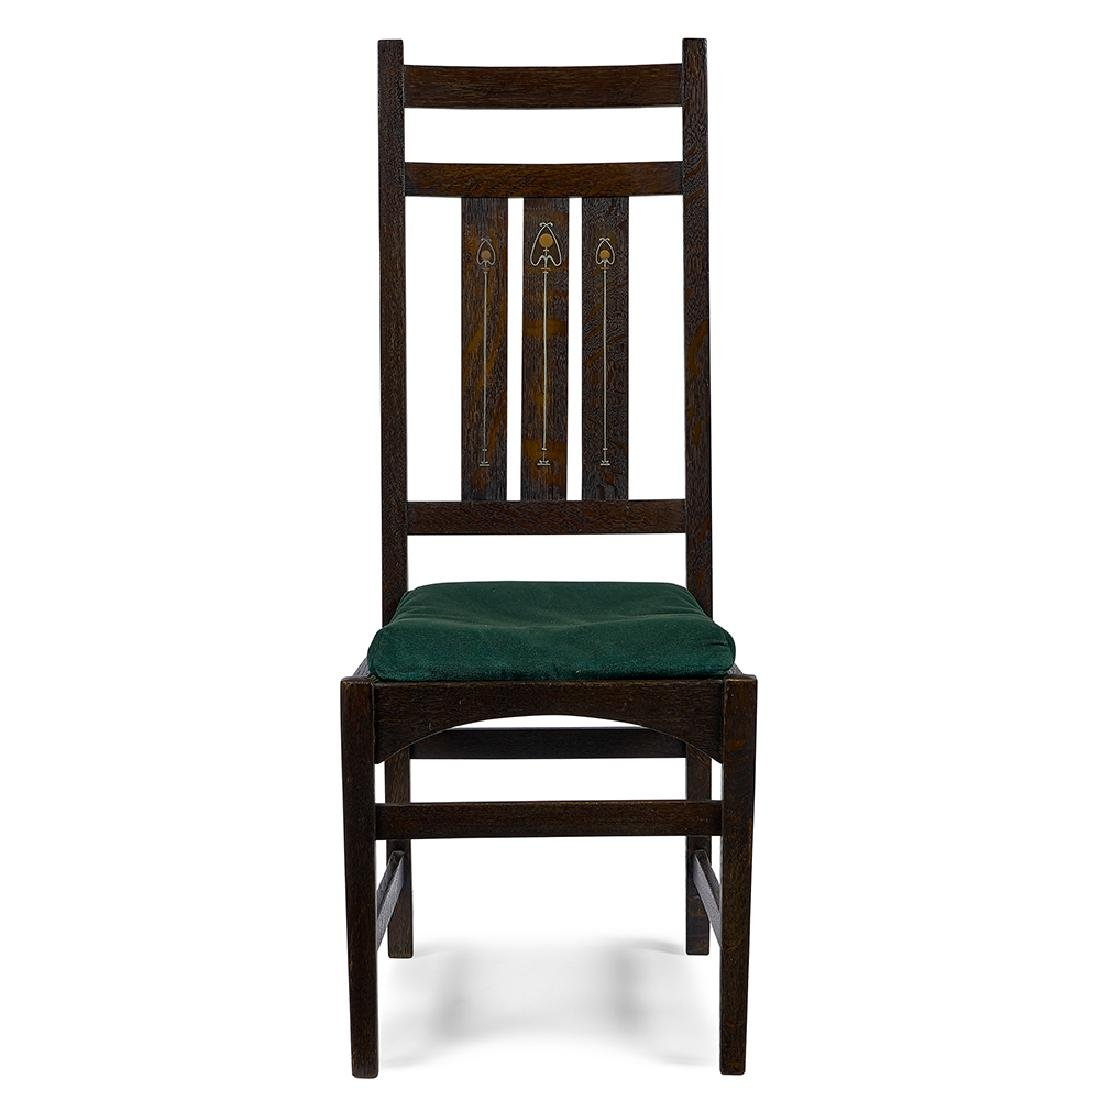 Gustav Stickley / Harvey Ellis inlaid side chair